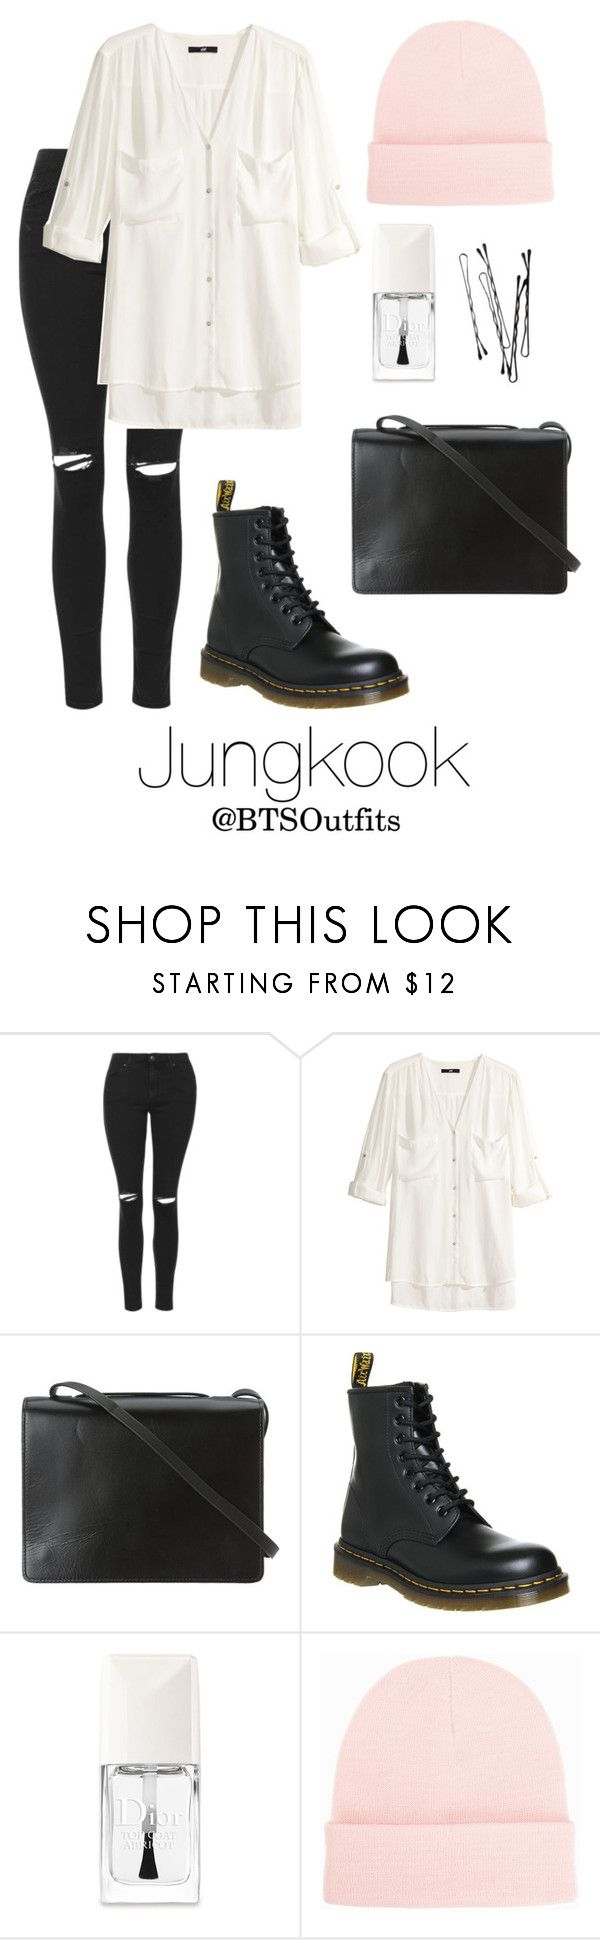 Spring Outfit Inspired by Jungkook by btsoutfits on Polyvore featuring H&M, Topshop, BCBGMAXAZRIA, NLY Accessories, Dr. Martens and Christian Dior